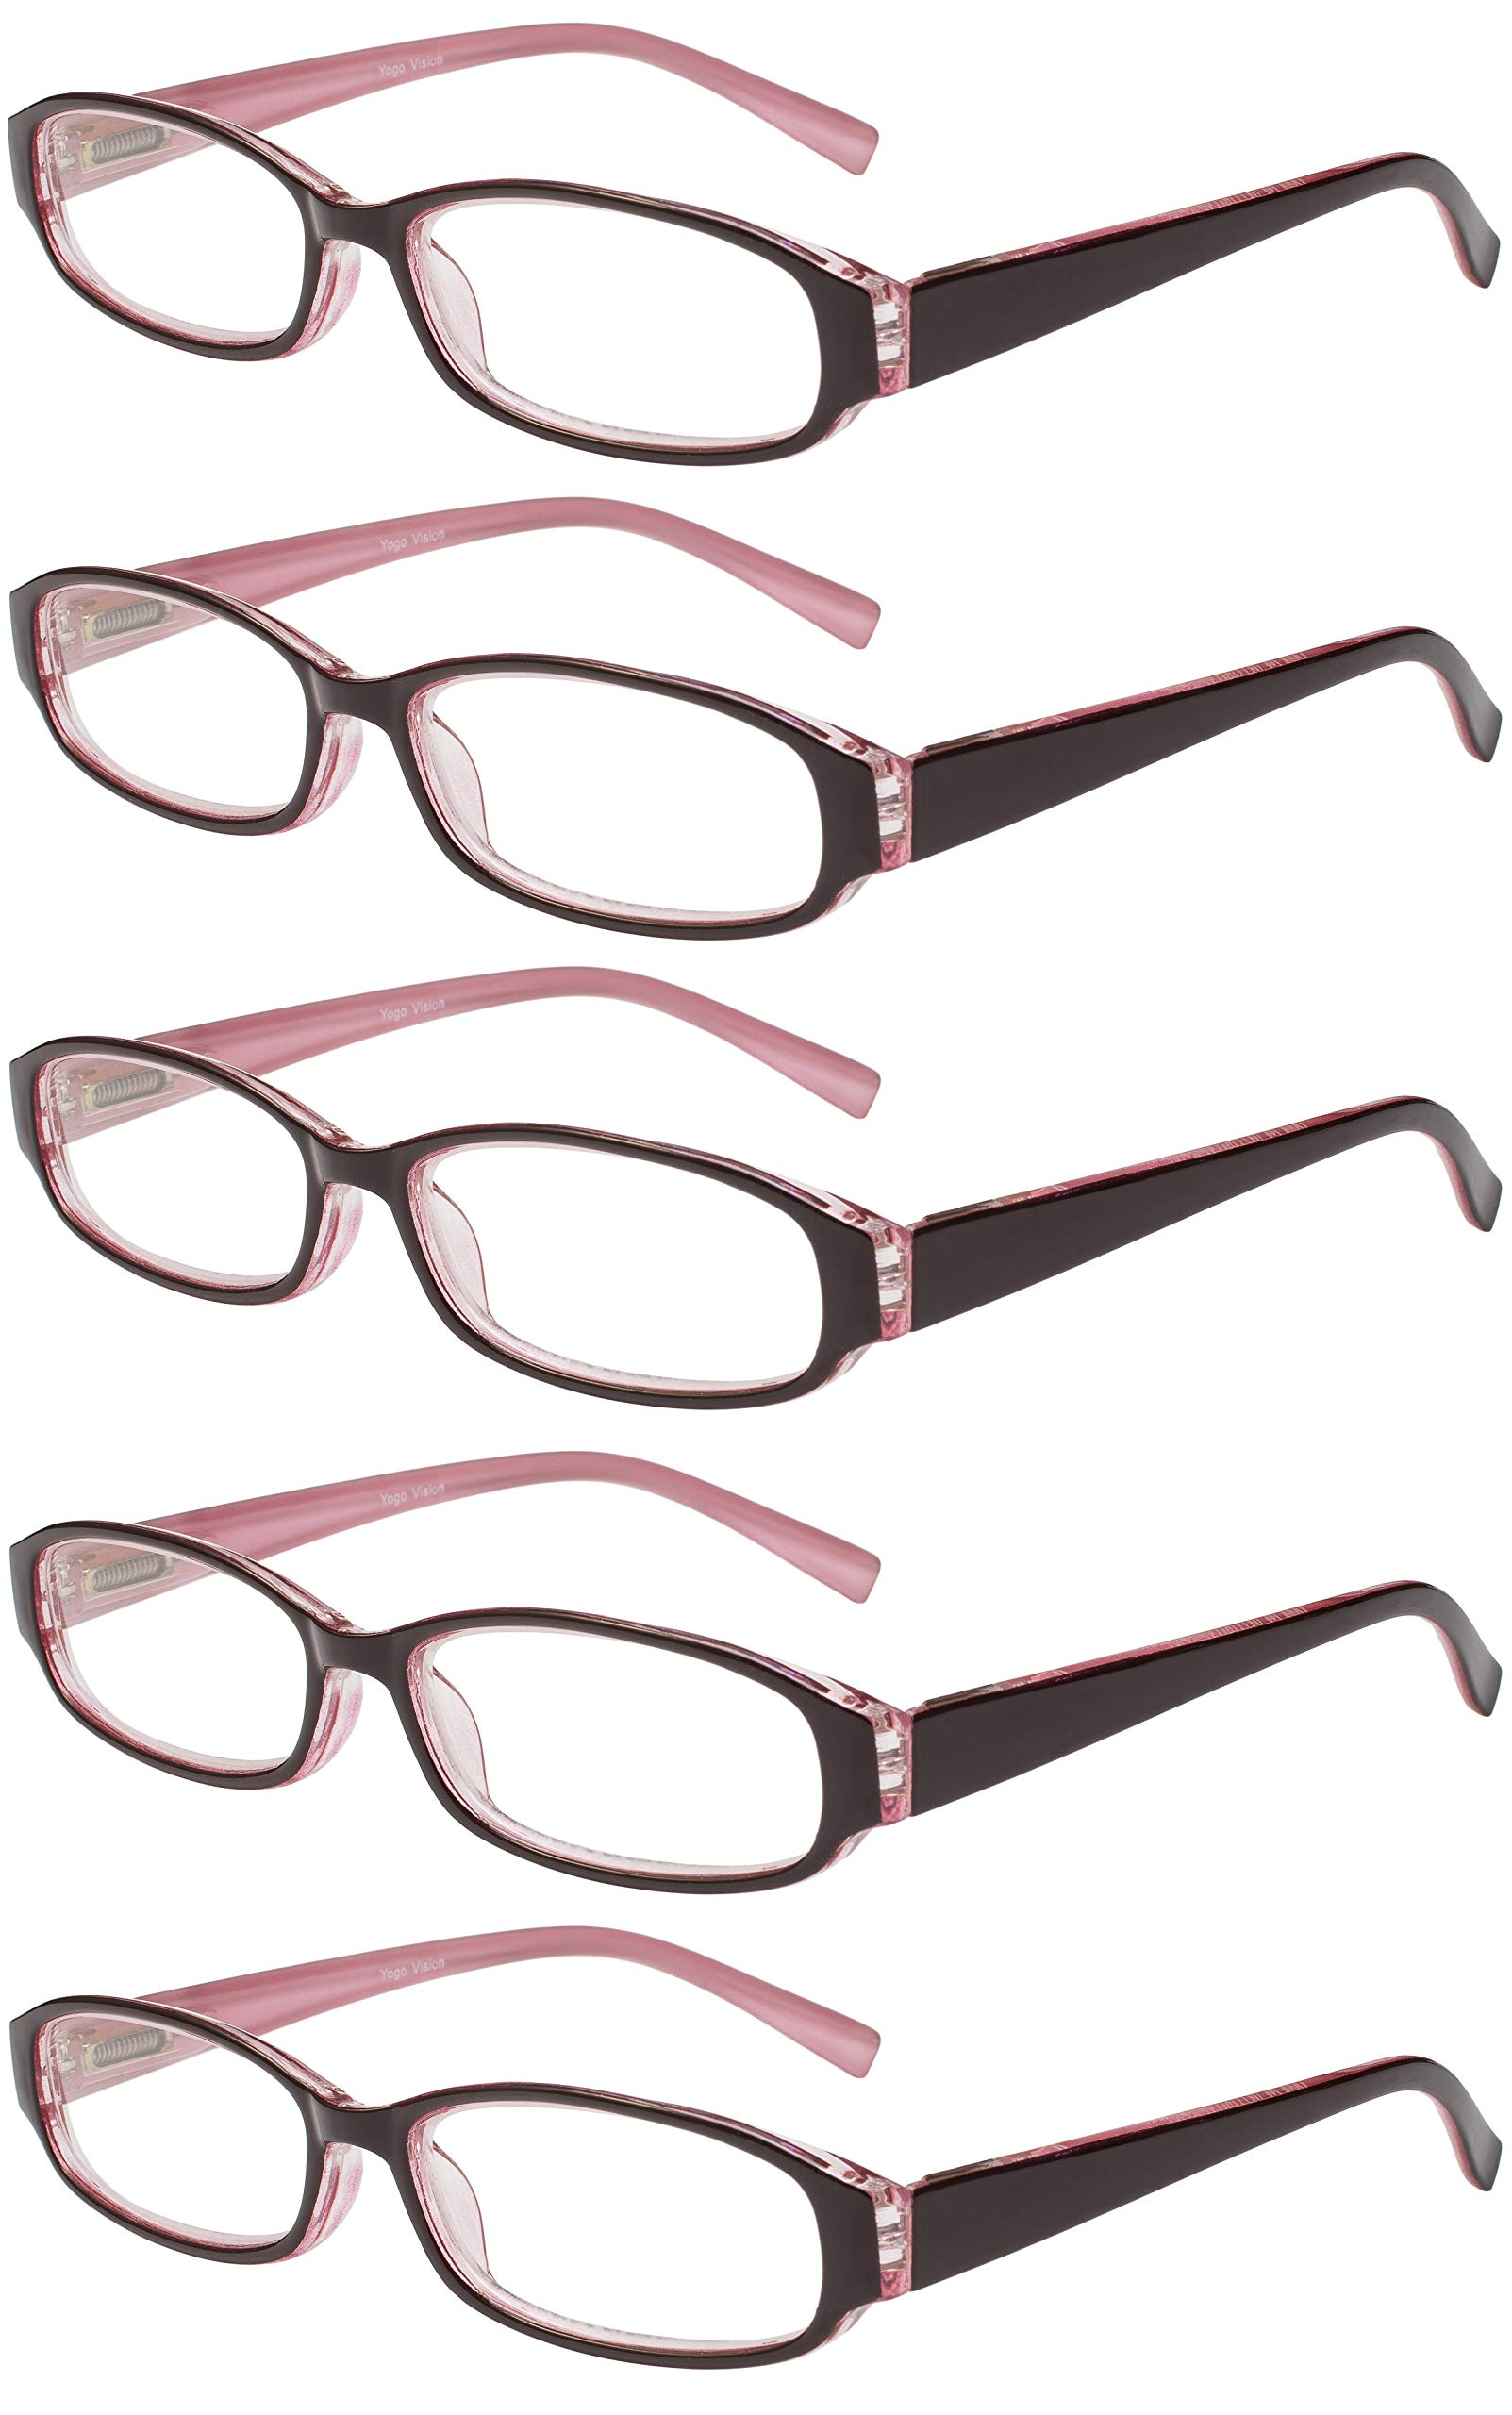 Reading Glasses 5 Pair Spring Hinge Fashion Quality Readers for Men and Women +1.25 by Success Eyewear